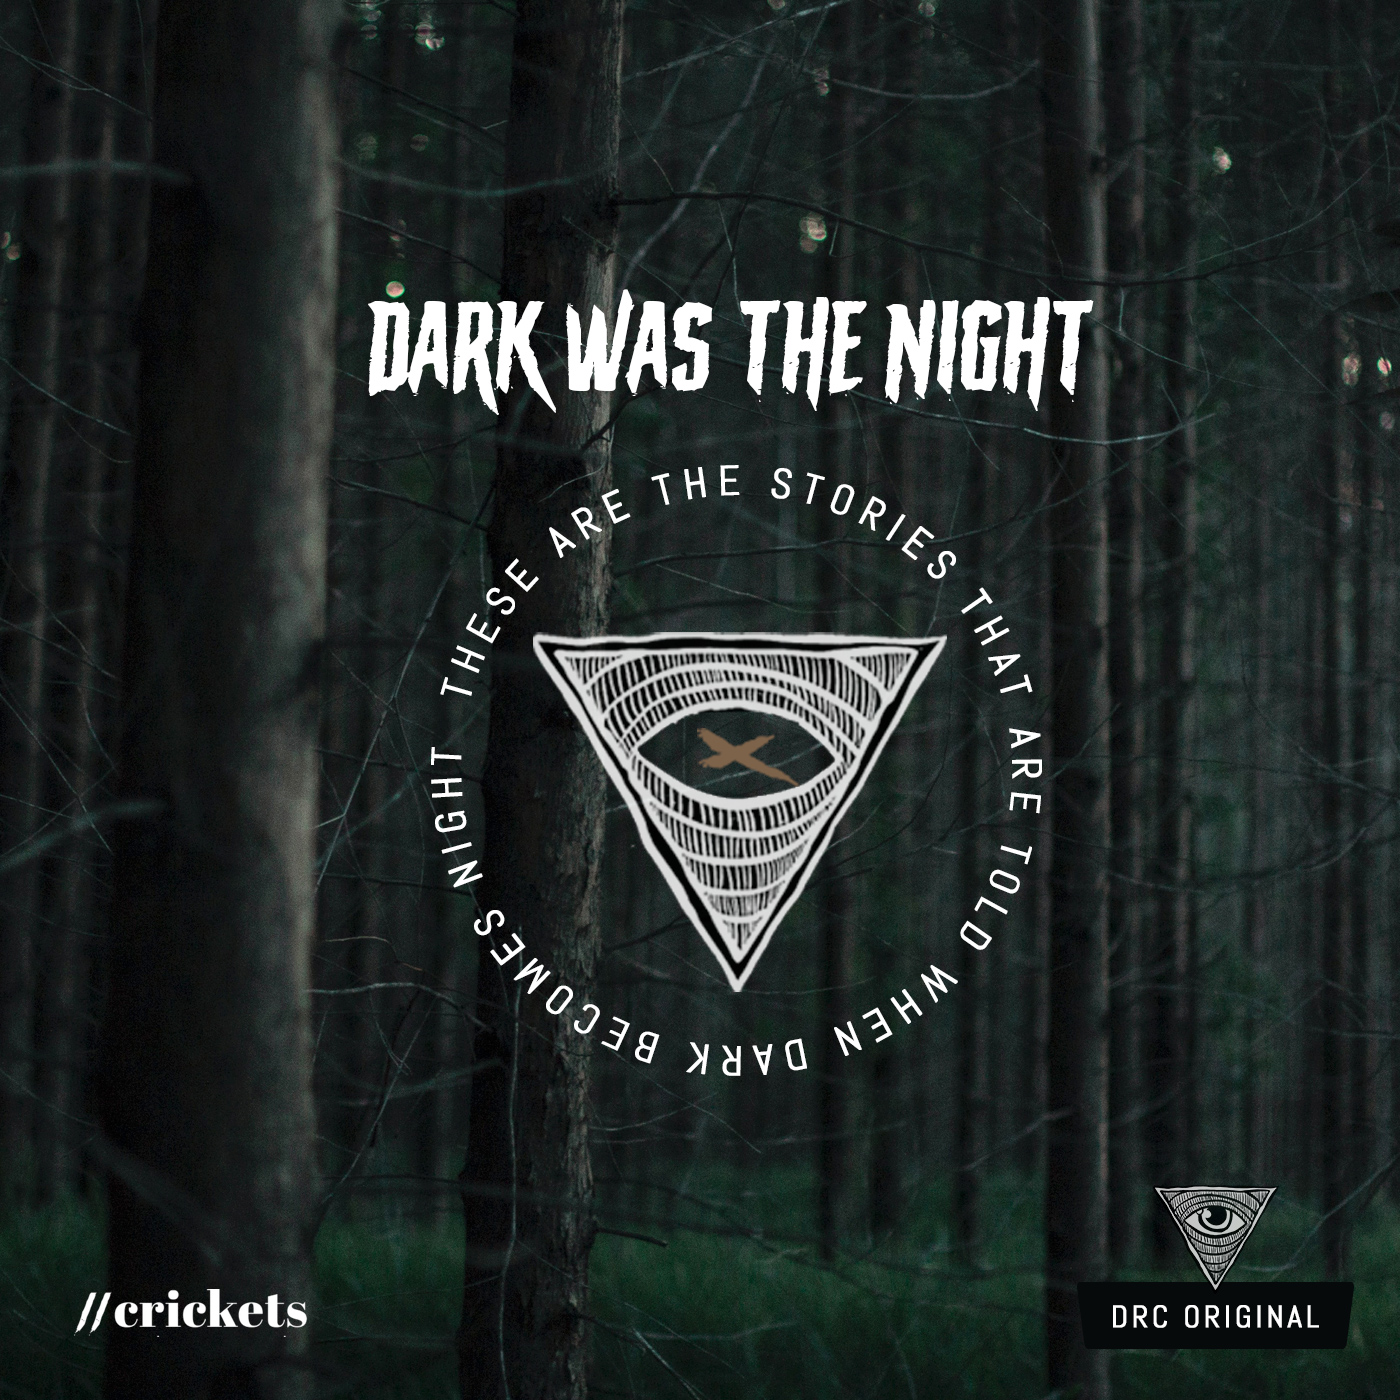 dark_was_the_night_stories_told_at_night